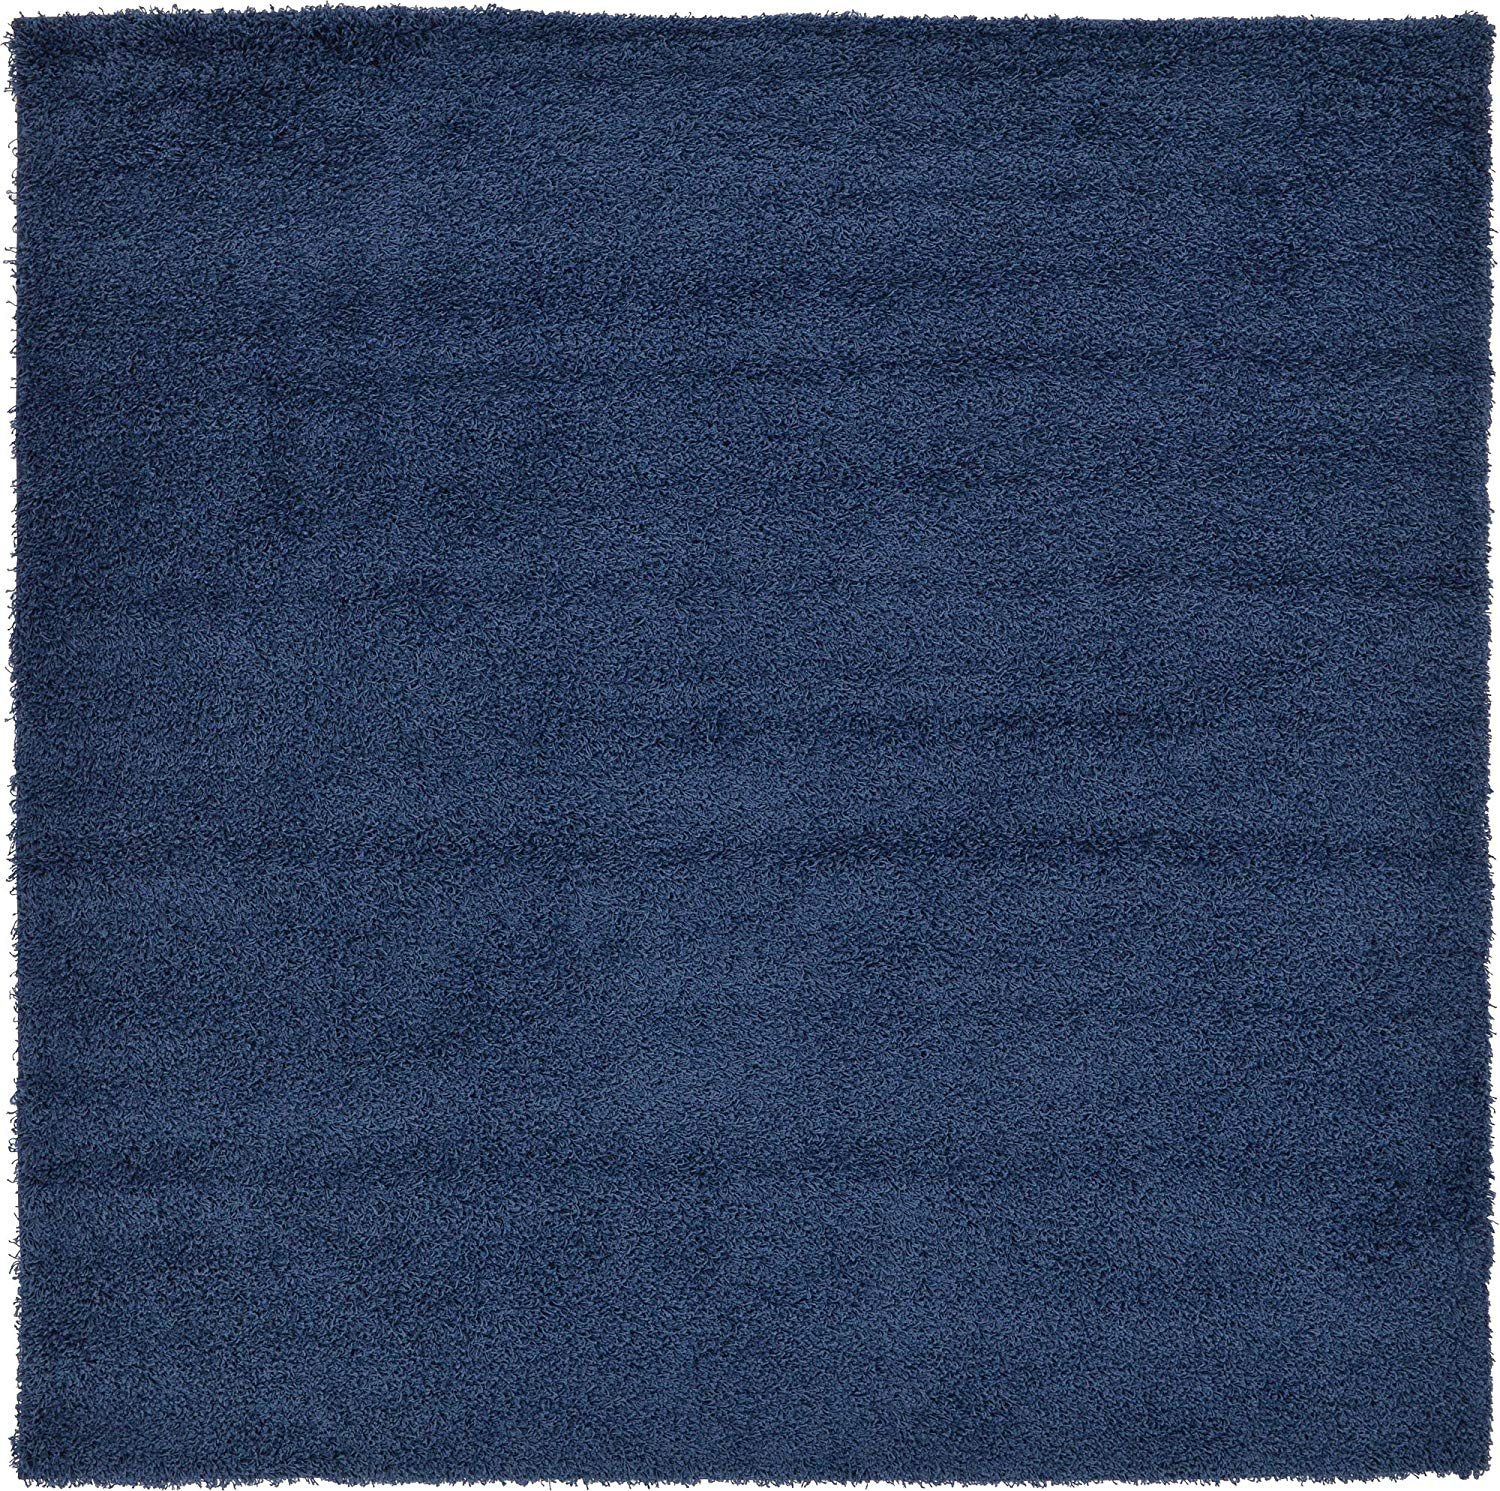 A2Z Rug Cozy Shaggy Collection 8x8-Feet Solid Area Rug - Sapphire Blue